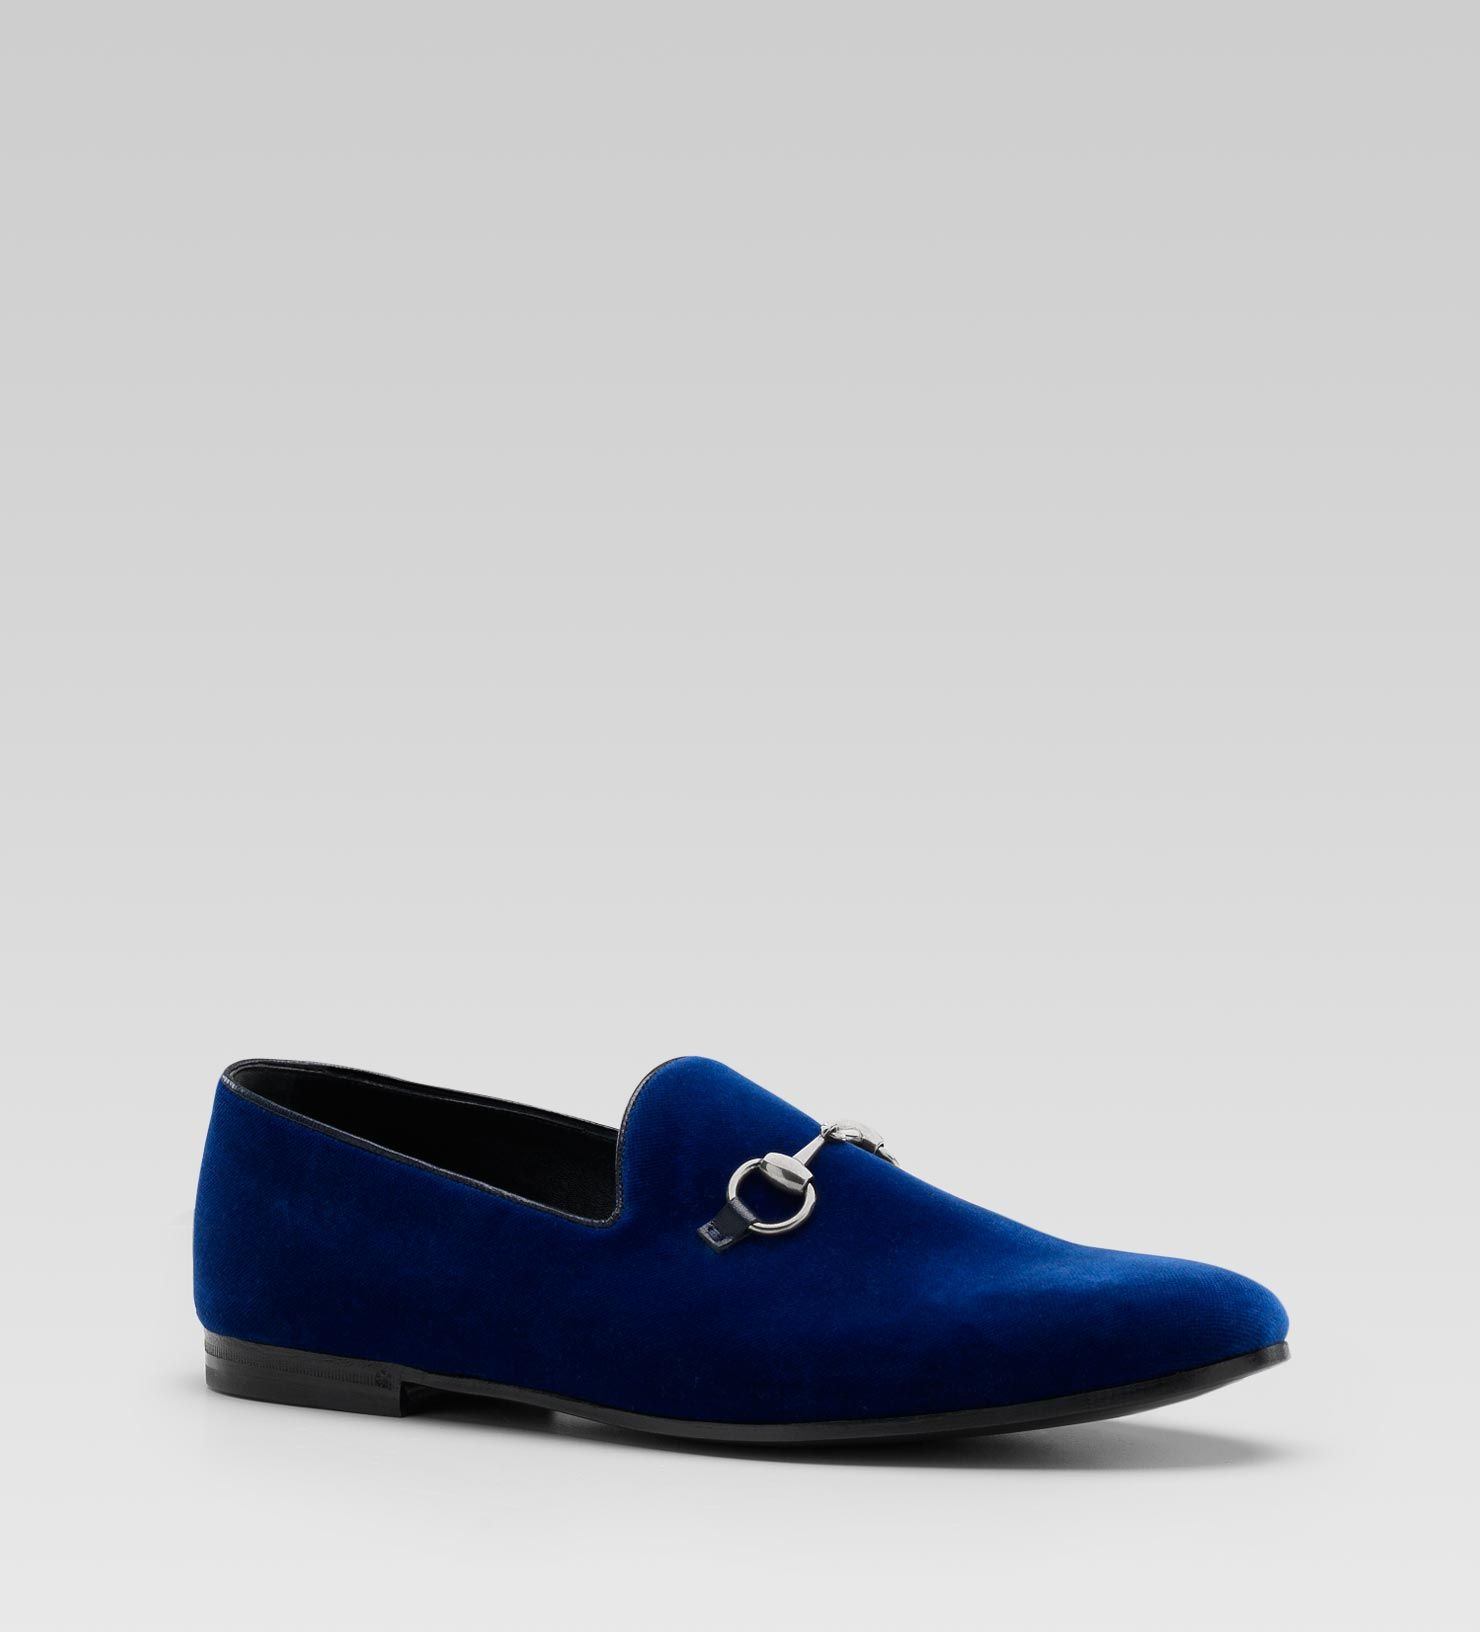 d98376bb6dab Are you kidding me with these shoes  A blue velvet horse bit Gucci loafer.  I am picturing this with jeans and a v-neck sweater or a classic white  oxford ...